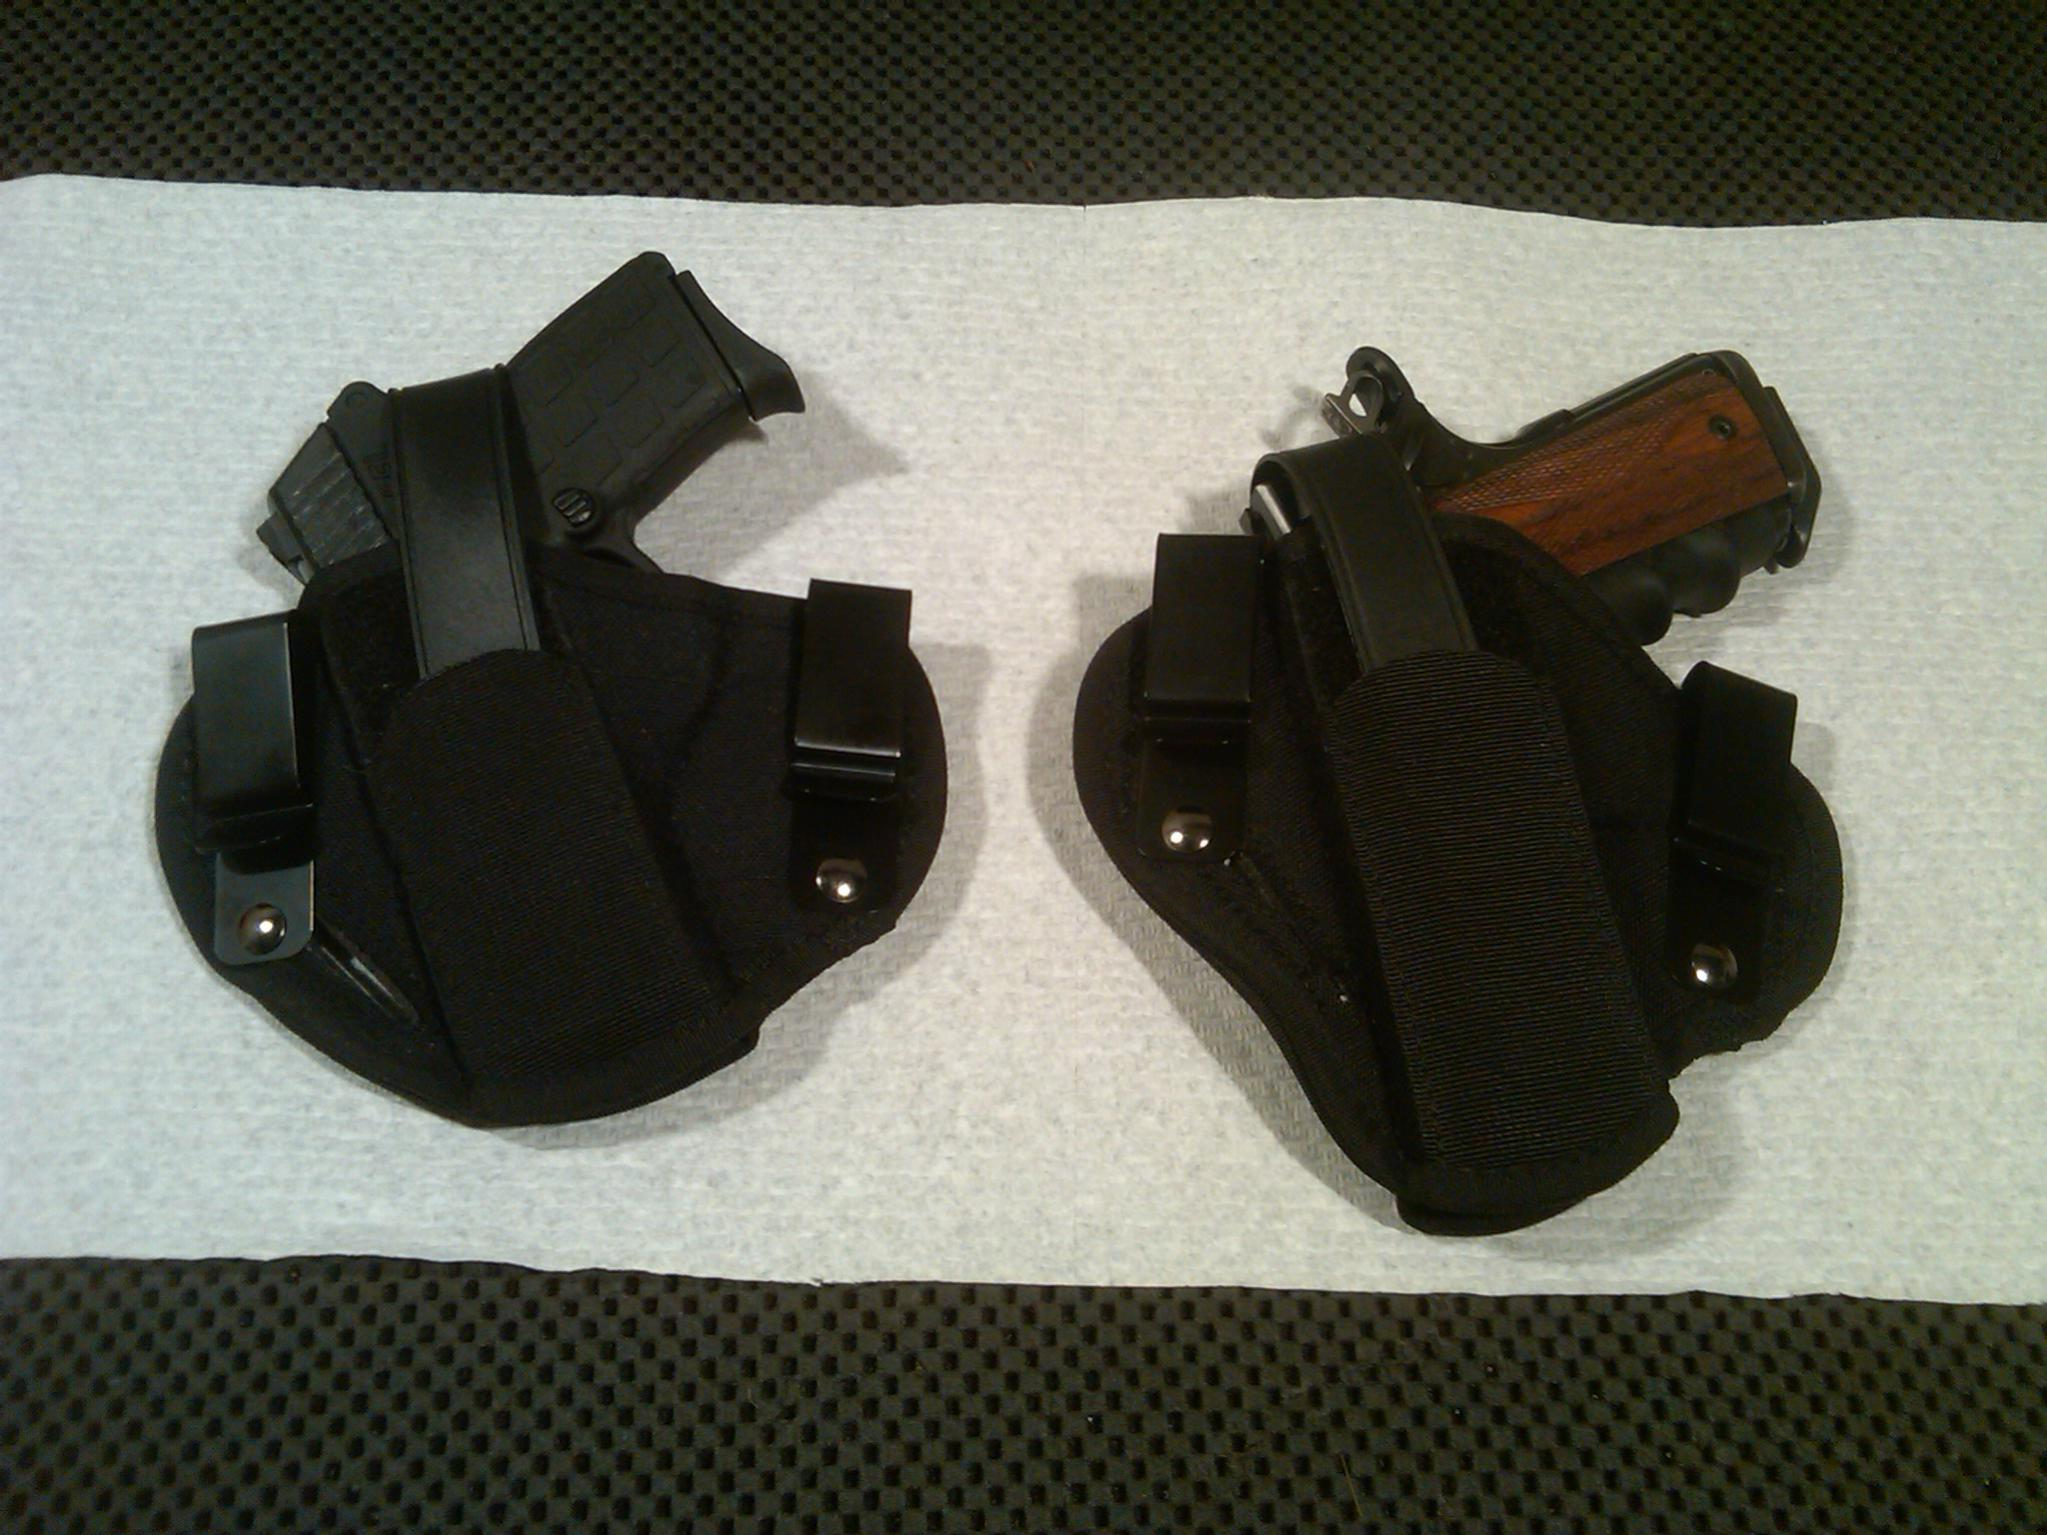 IWB holsters for my PF-9 and 1911-img00102-20110308-2115.jpg